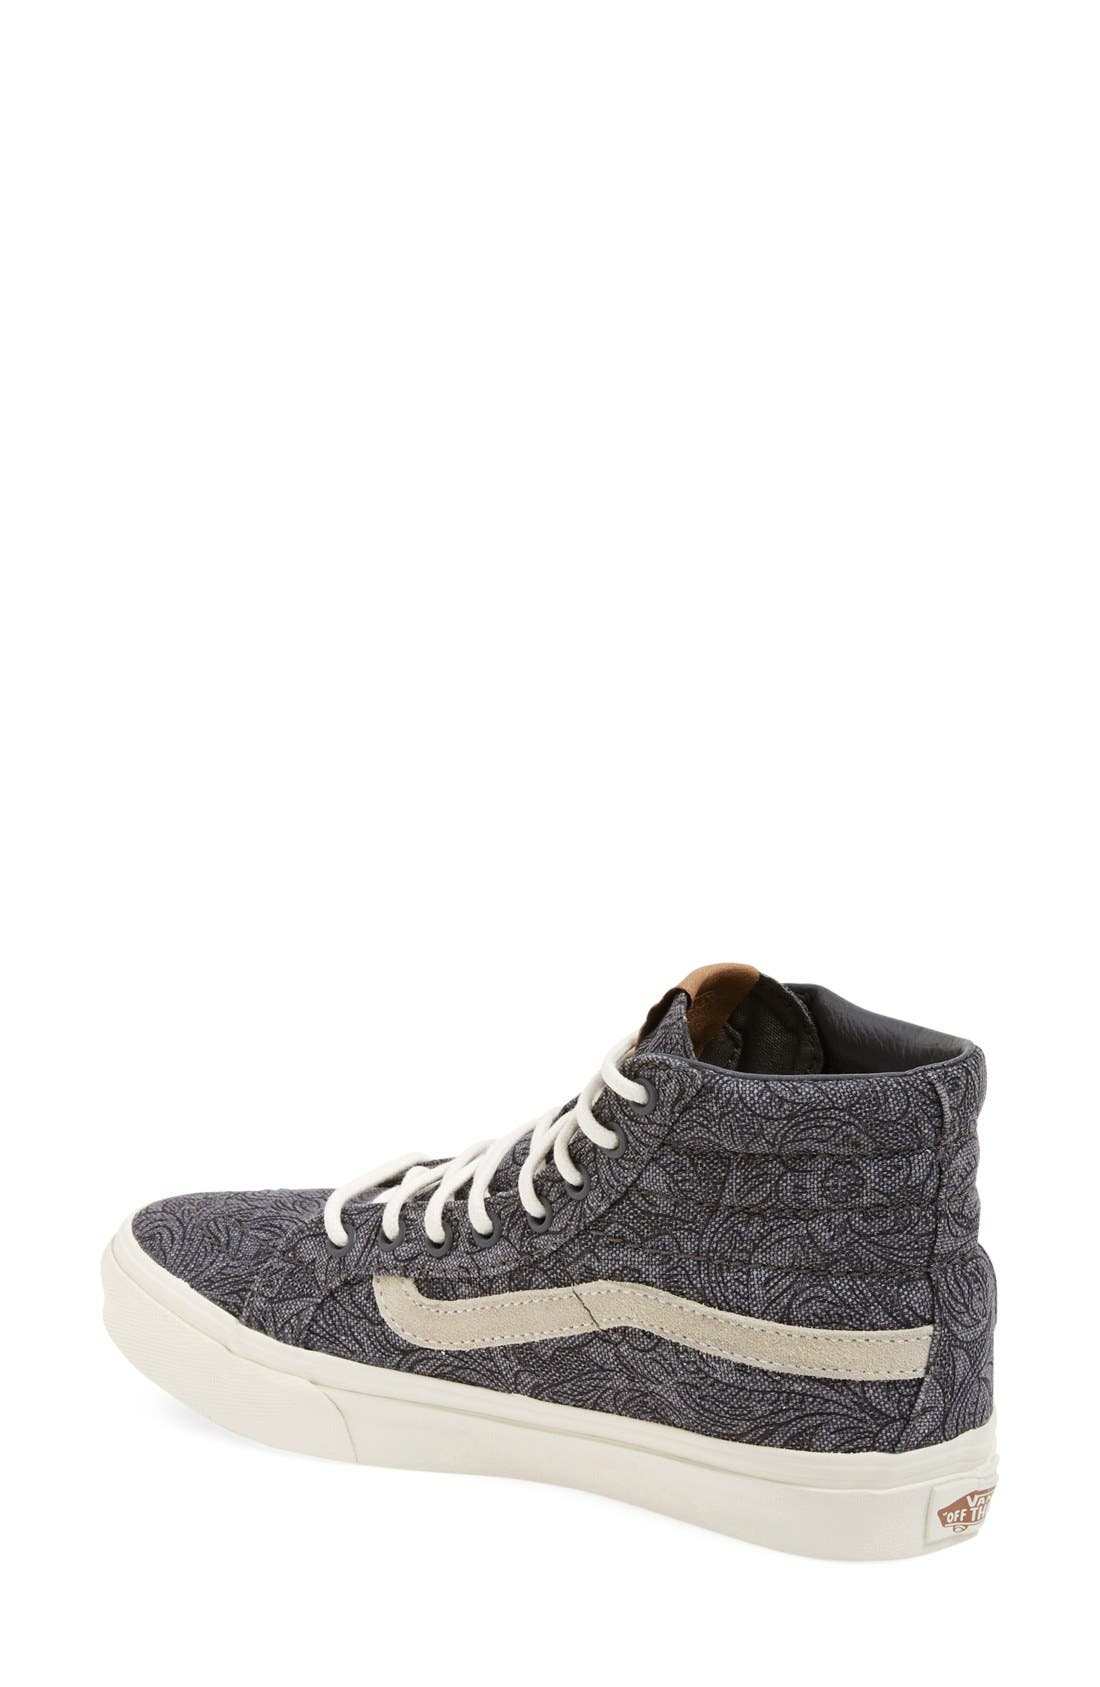 Alternate Image 2  - Vans 'Sk8-Hi Slim' Sneaker (Women)